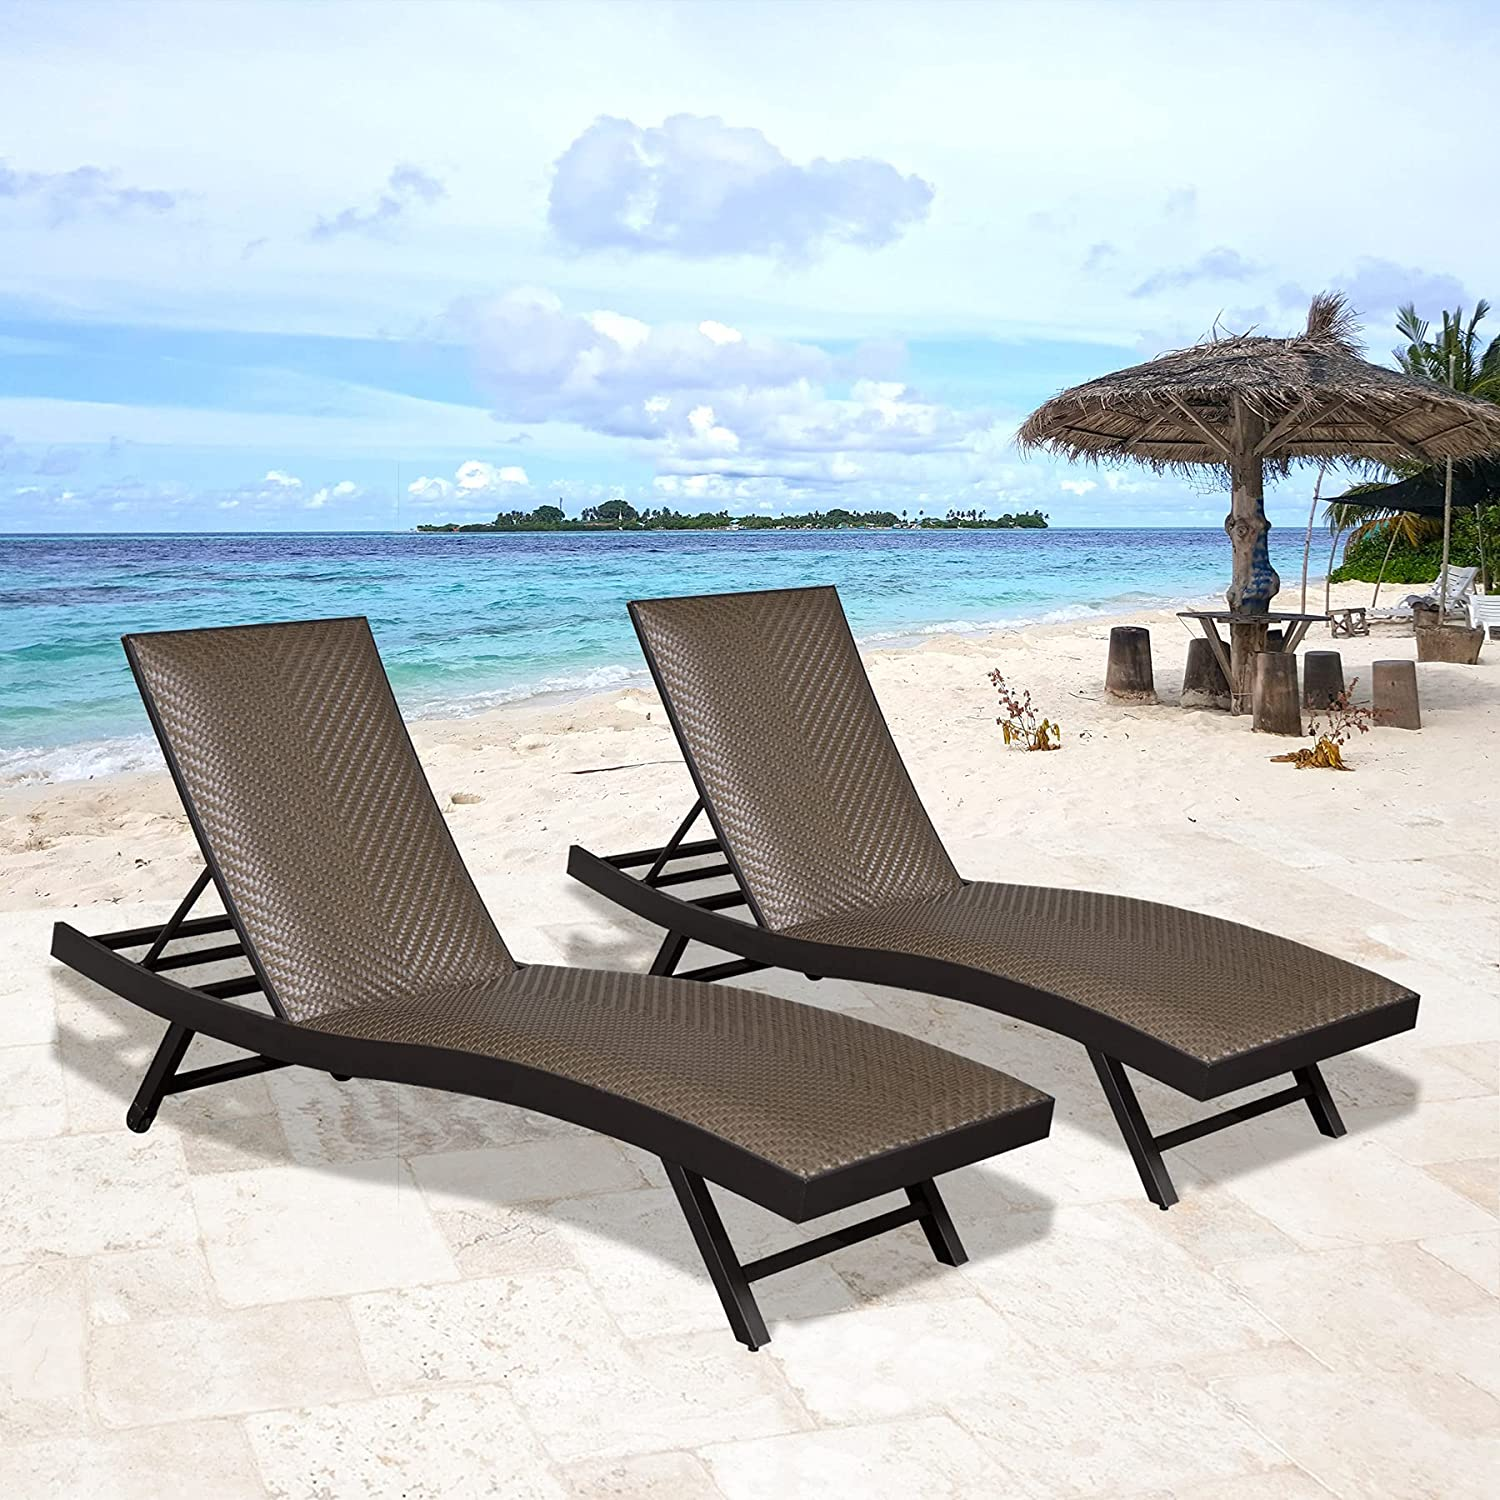 Set of 2 Outdoor Chaise Lounge Lounger Chairs shop Denver Mall Patio Wicker Chair